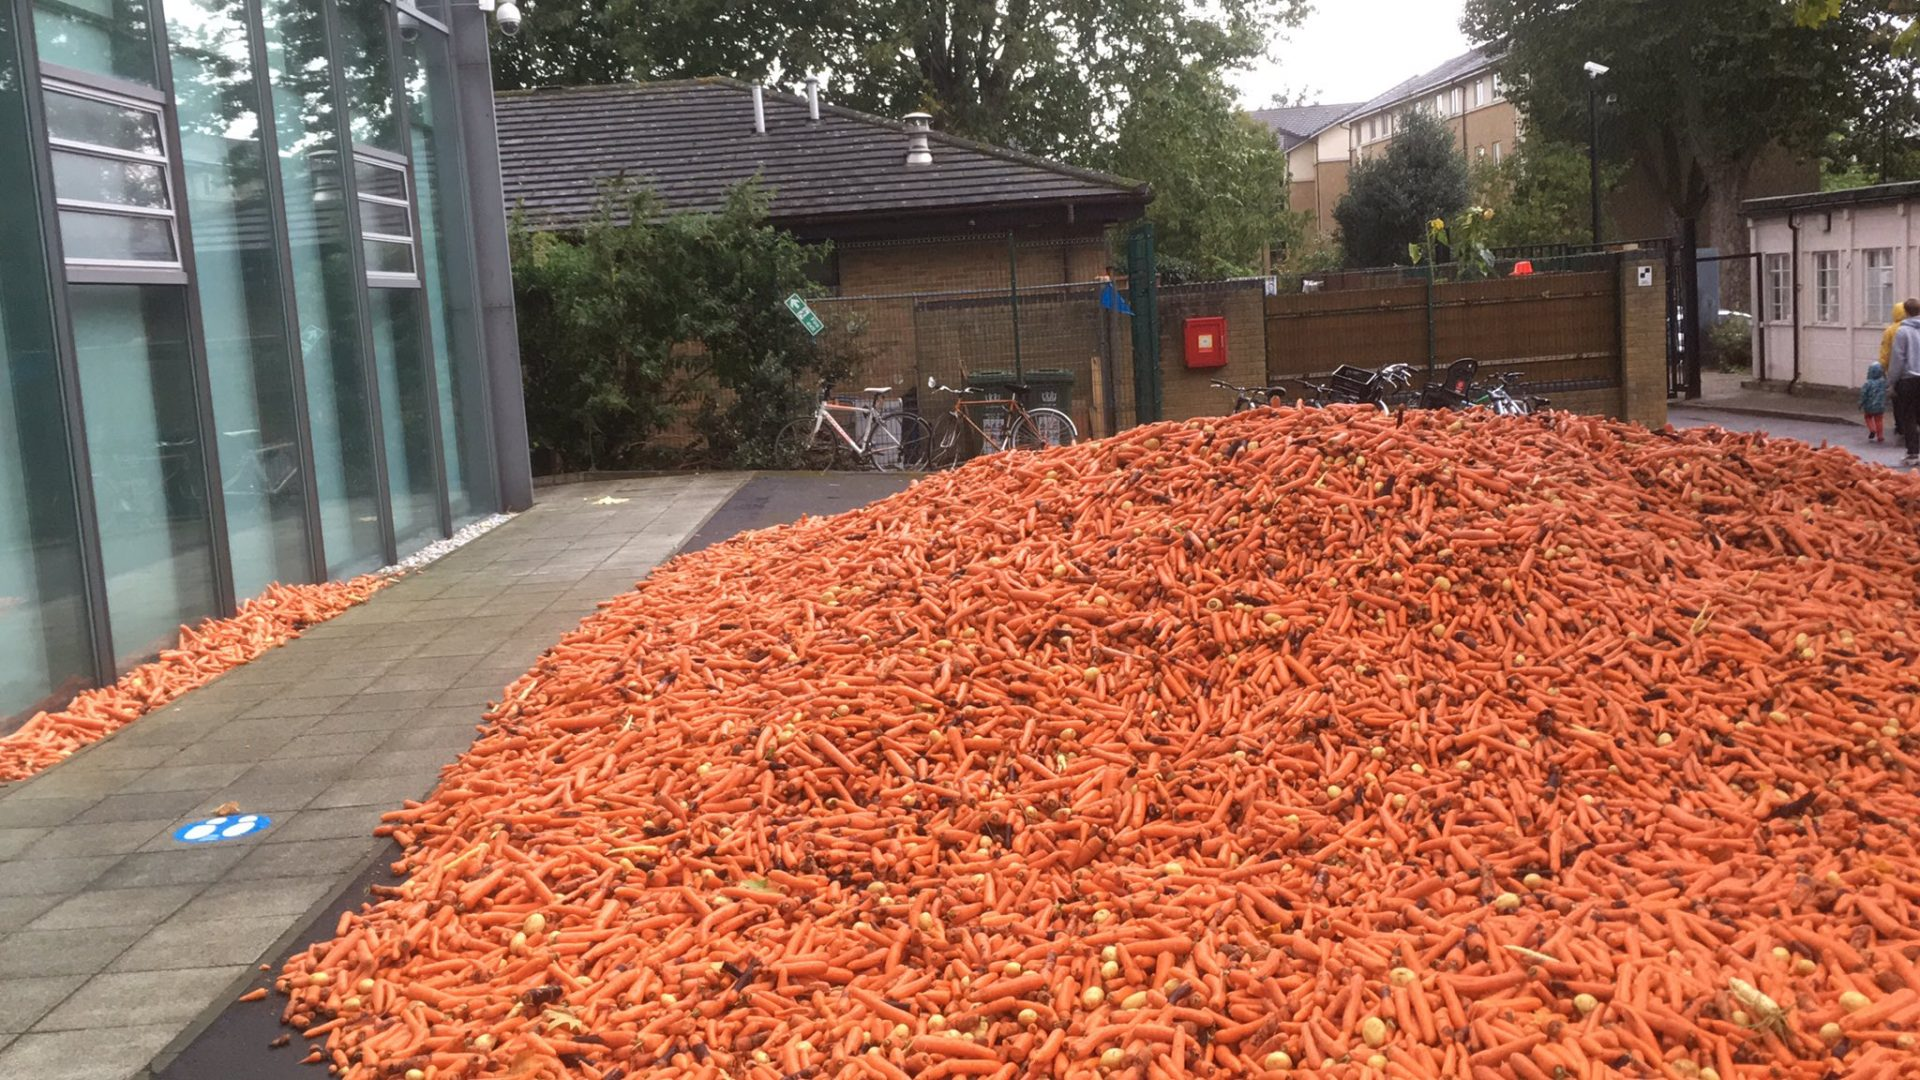 58,000 Pounds Of Carrots Dumped